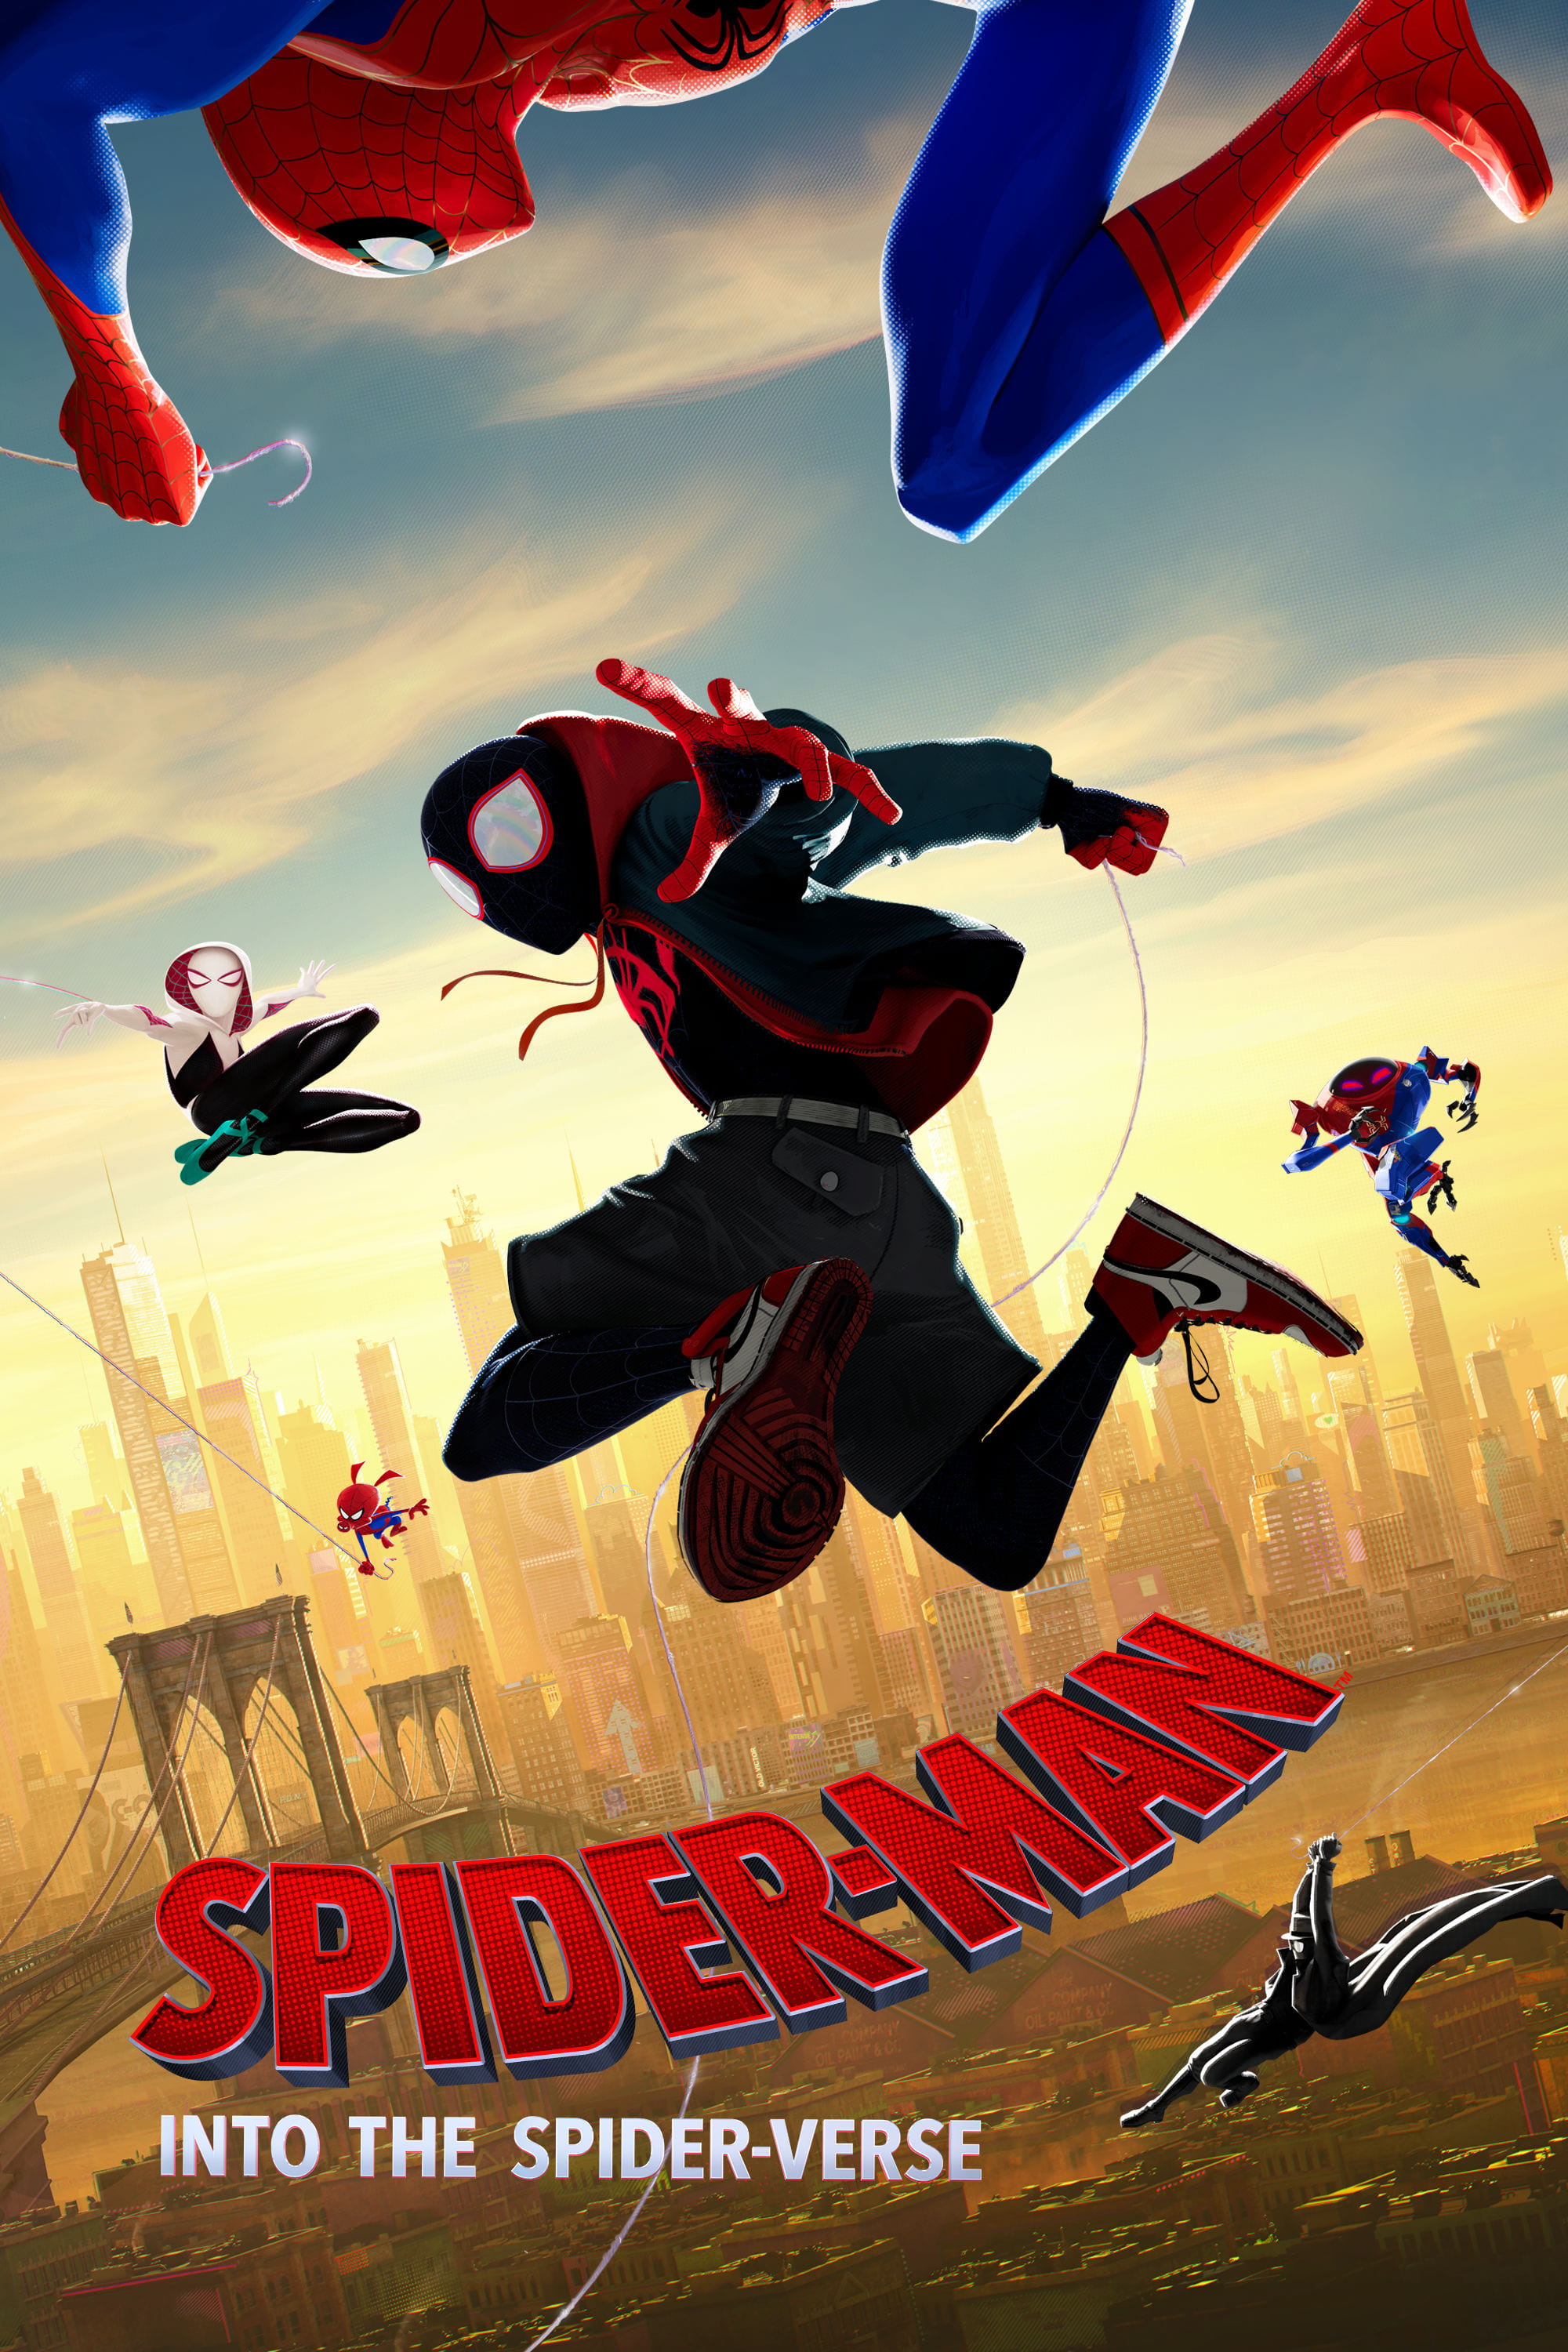 Poster and image movie Film Spider-Man: Into the Spider-Verse 2018